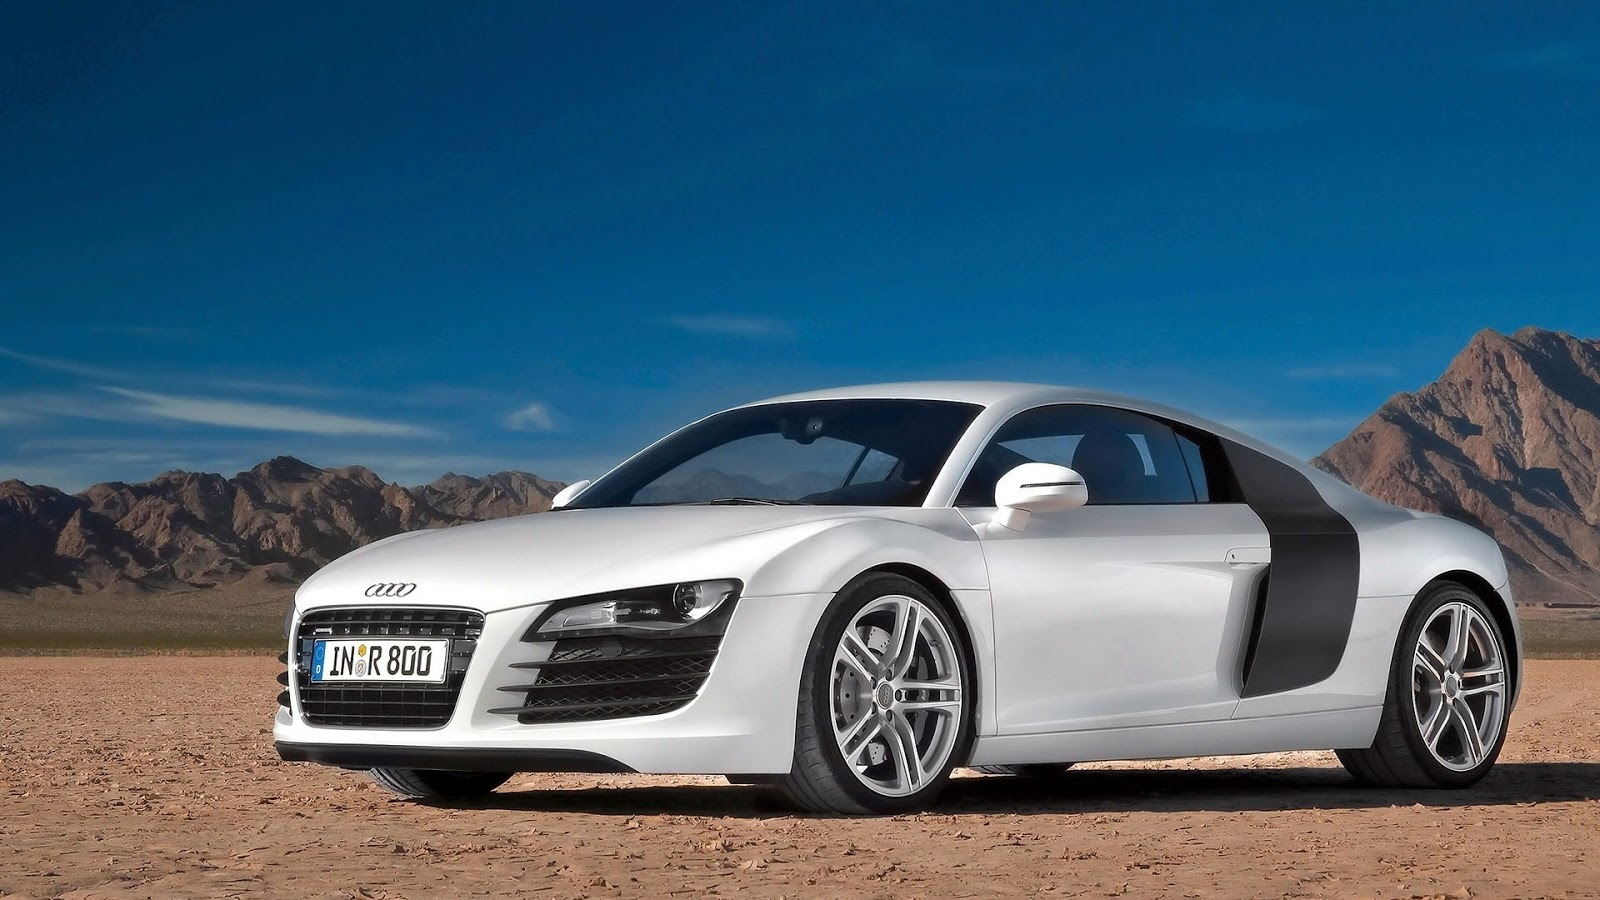 top 27 most beautiful and dashing audi car wallpapers in hd. Black Bedroom Furniture Sets. Home Design Ideas